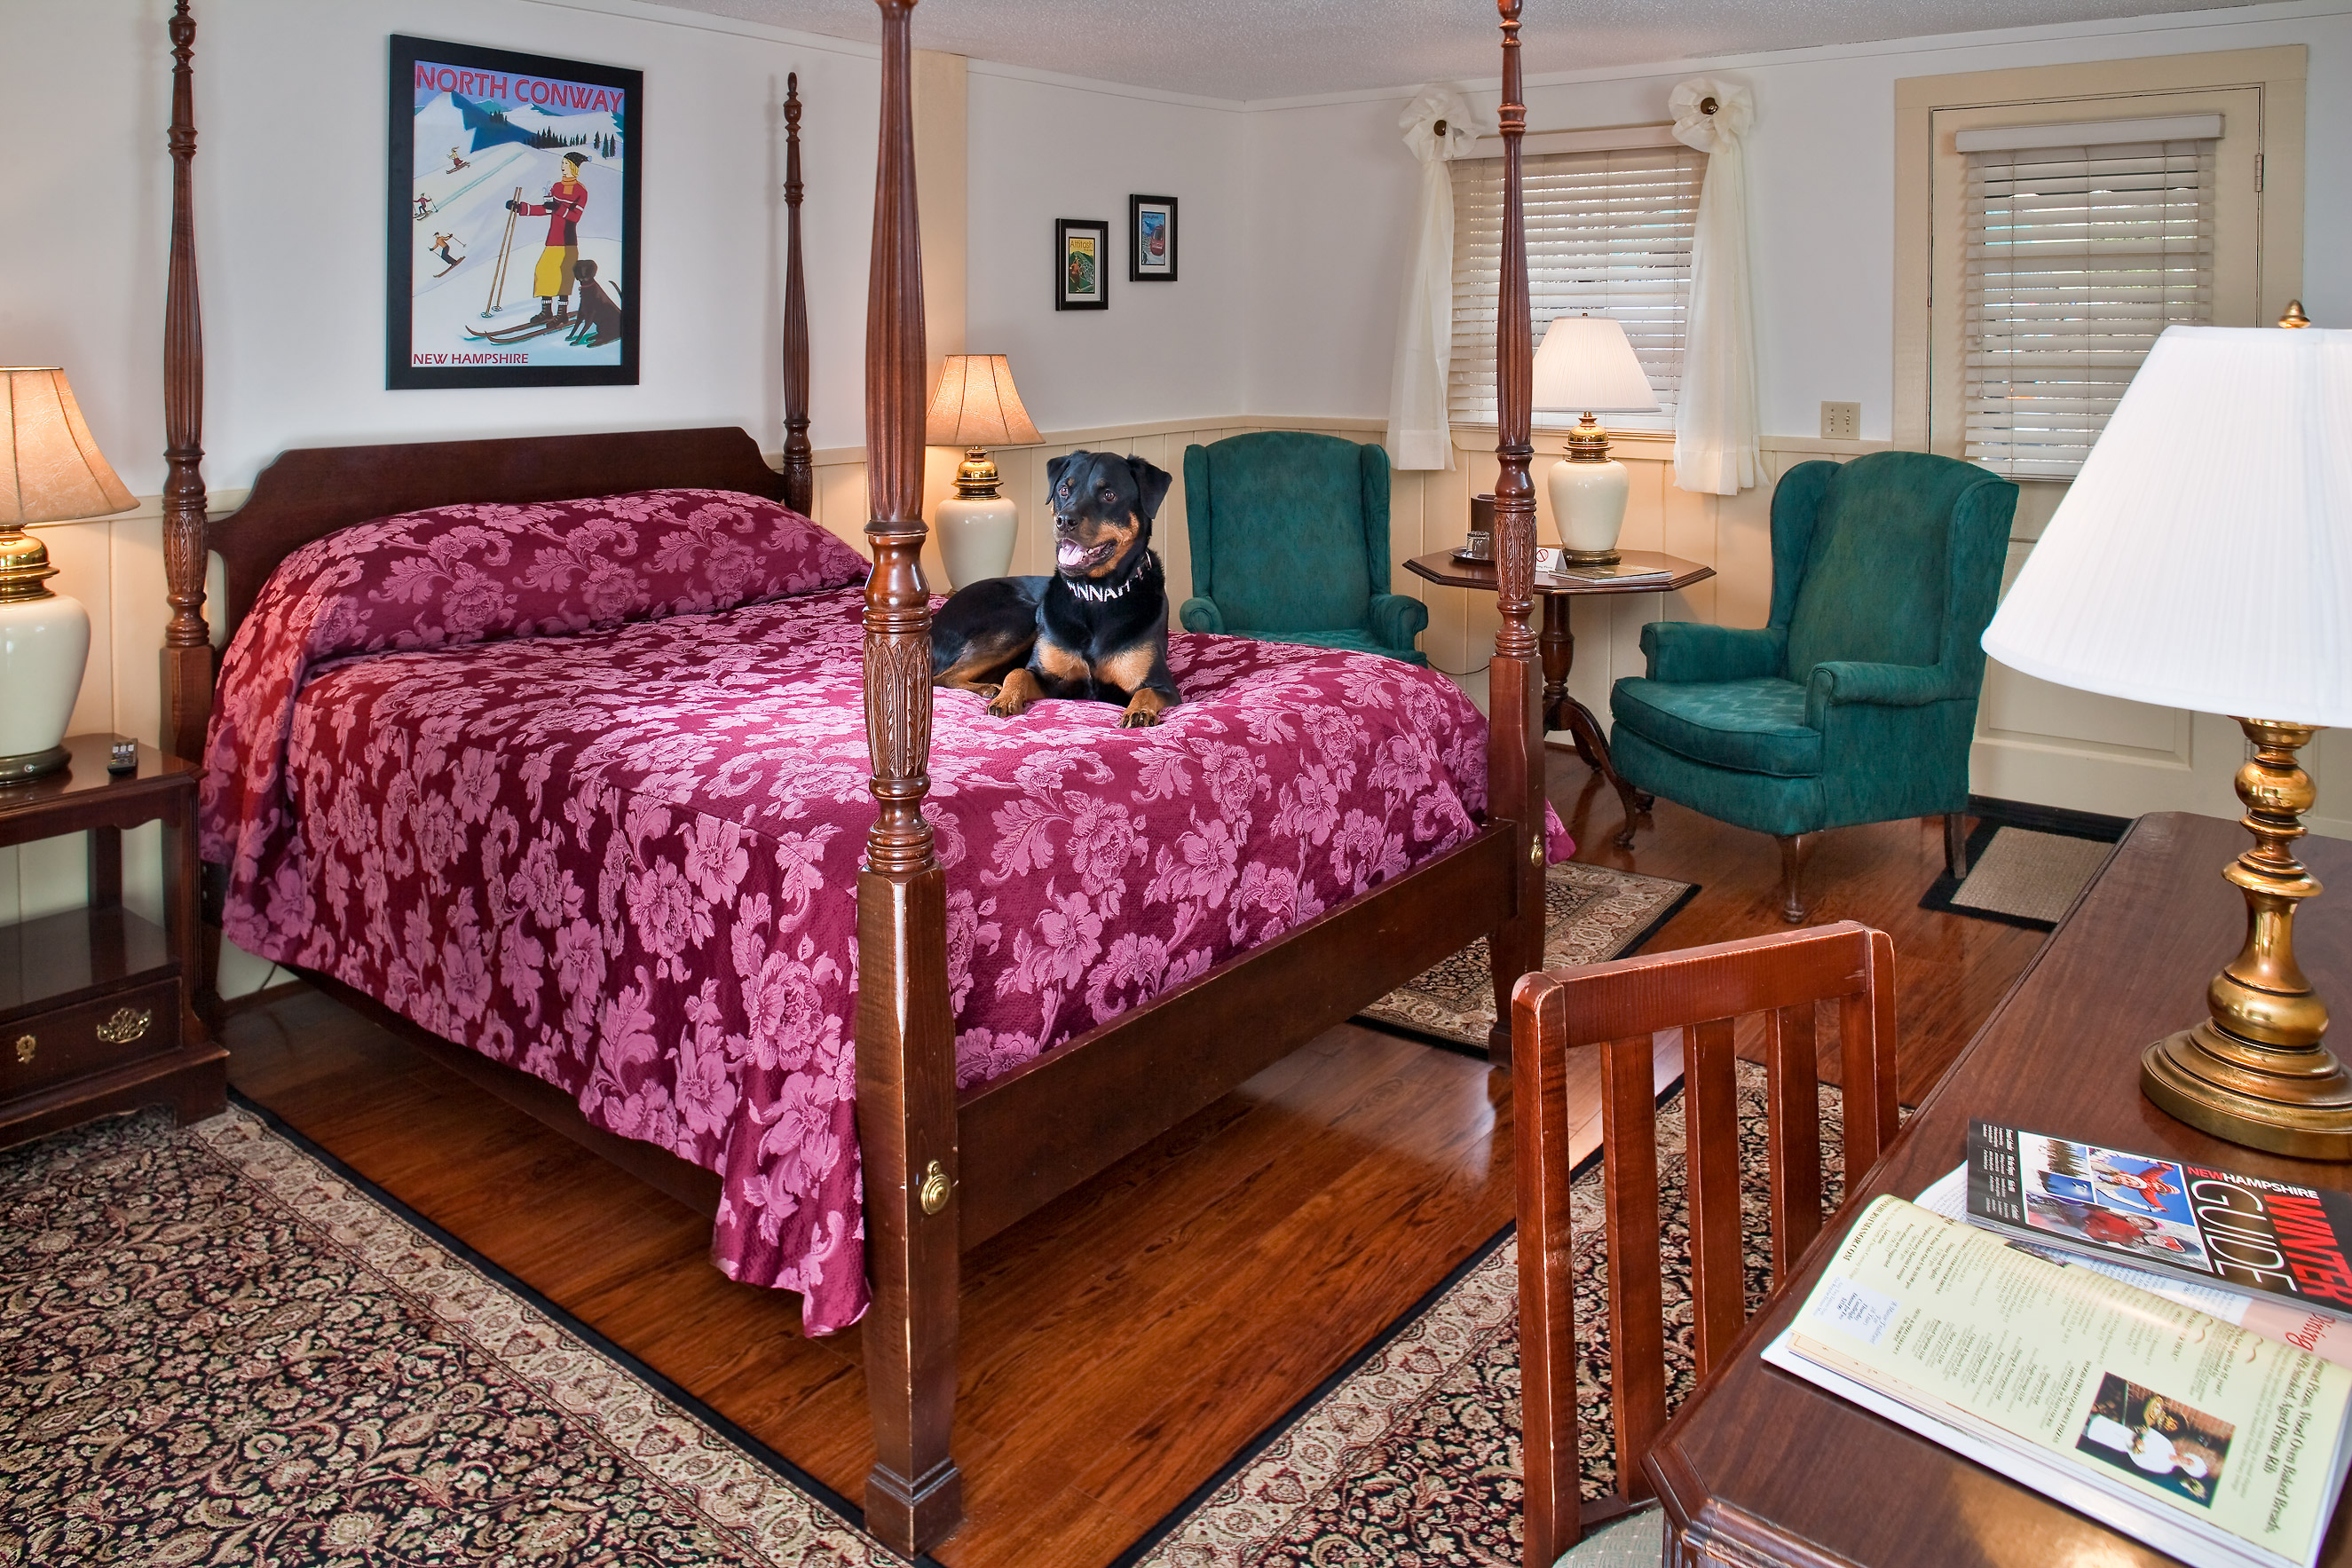 Admirable Hotel Rooms In North Conway Nh Stonehurst Manor Download Free Architecture Designs Scobabritishbridgeorg